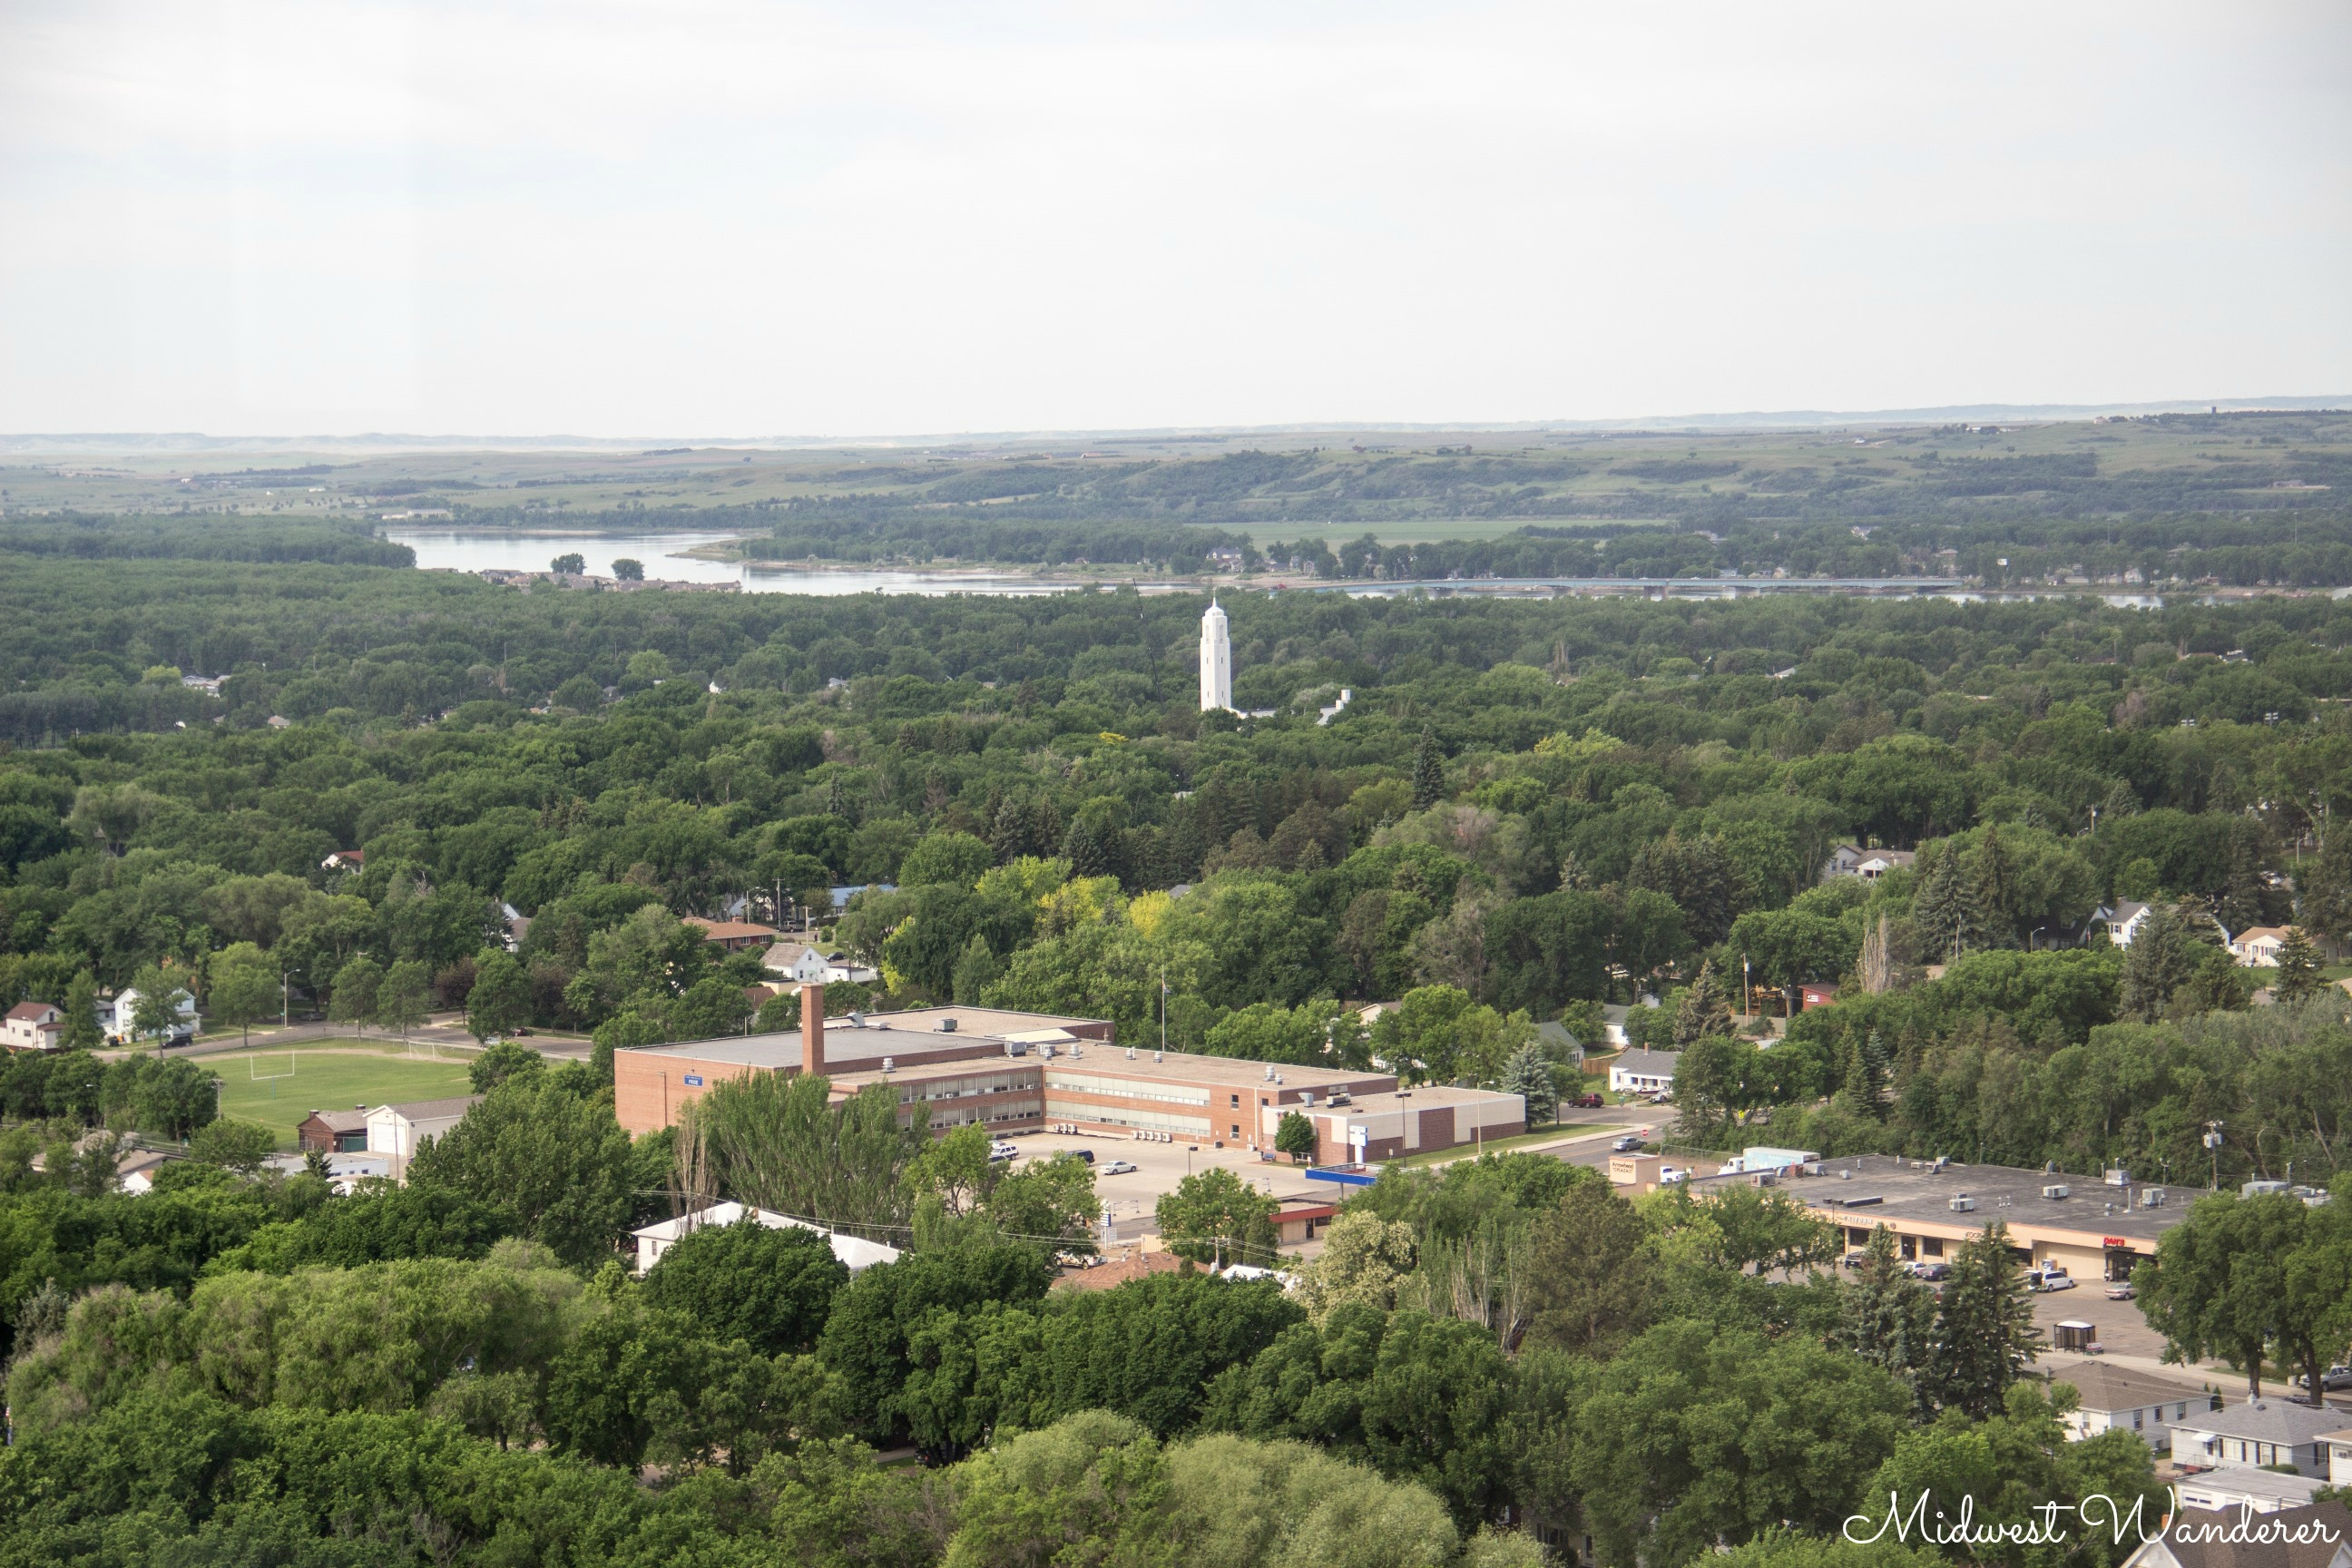 View from observation deck